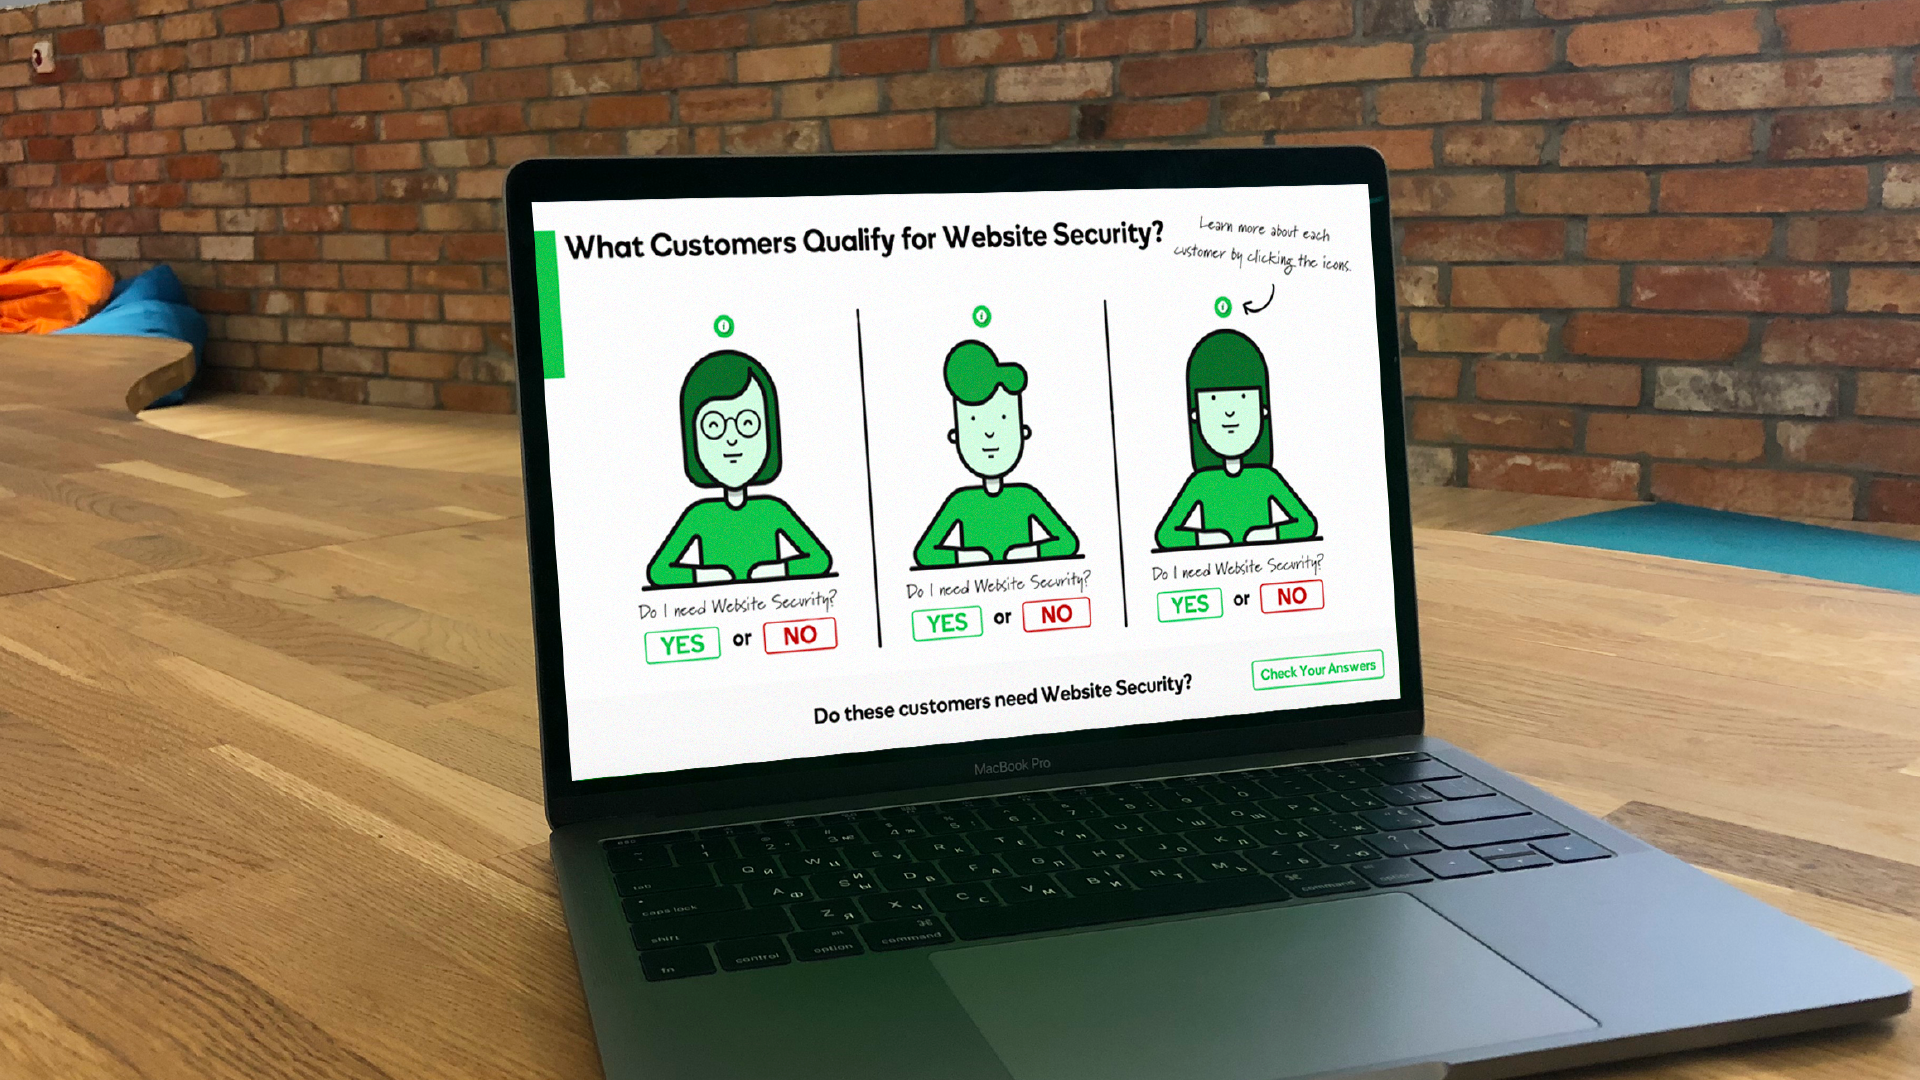 Tim Slade's eLearning Portfolio | GoDaddy Website Security eLearning | Custom eLearning Development & Design